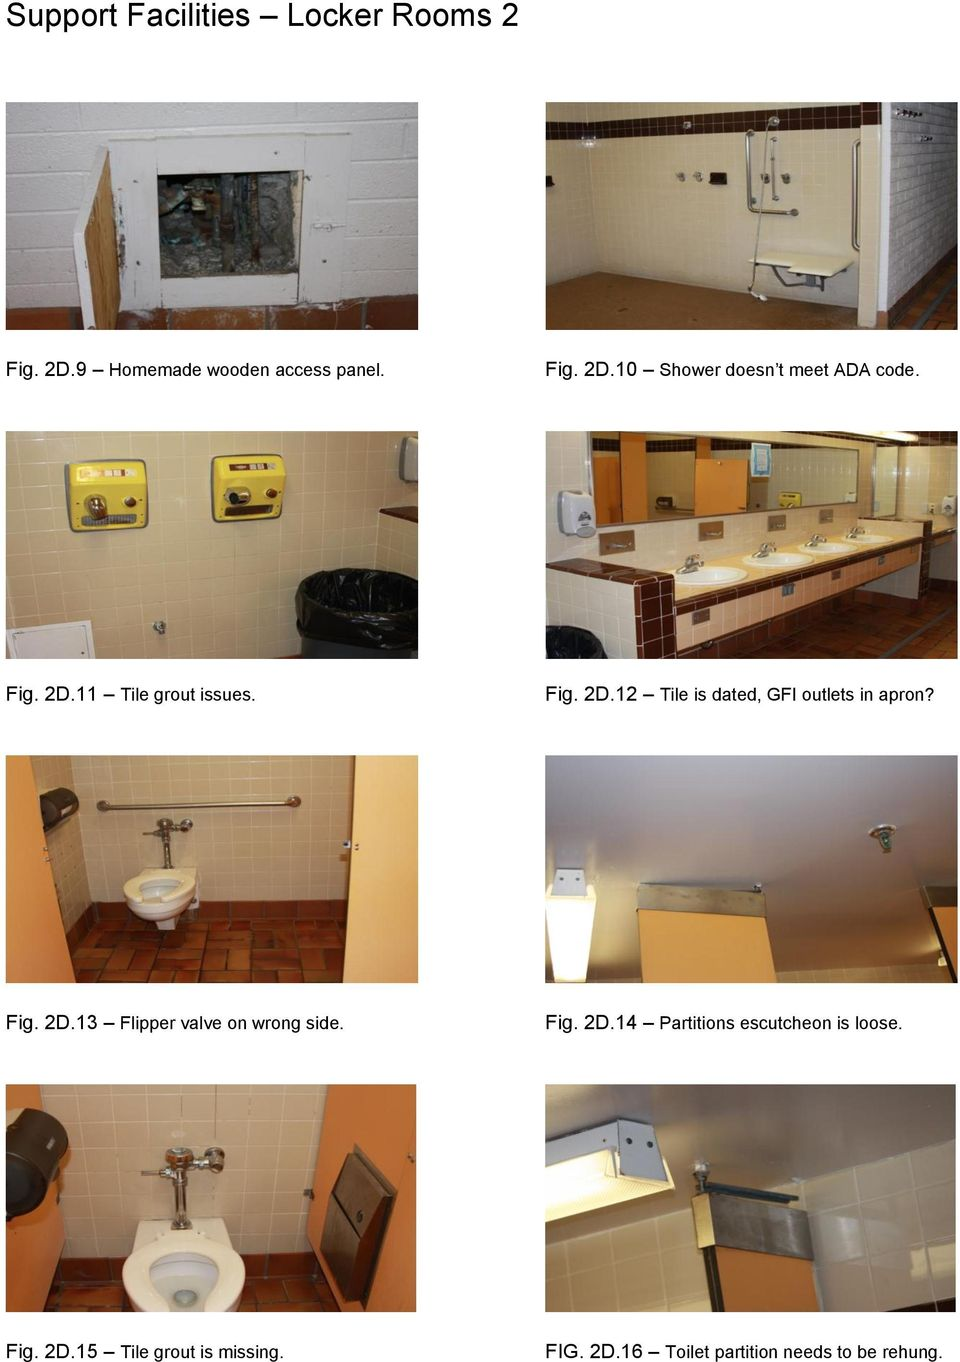 Fig. 2D.14 Partitions escutcheon is loose. Fig. 2D.15 Tile grout is missing. FIG. 2D.16 Toilet partition needs to be rehung.